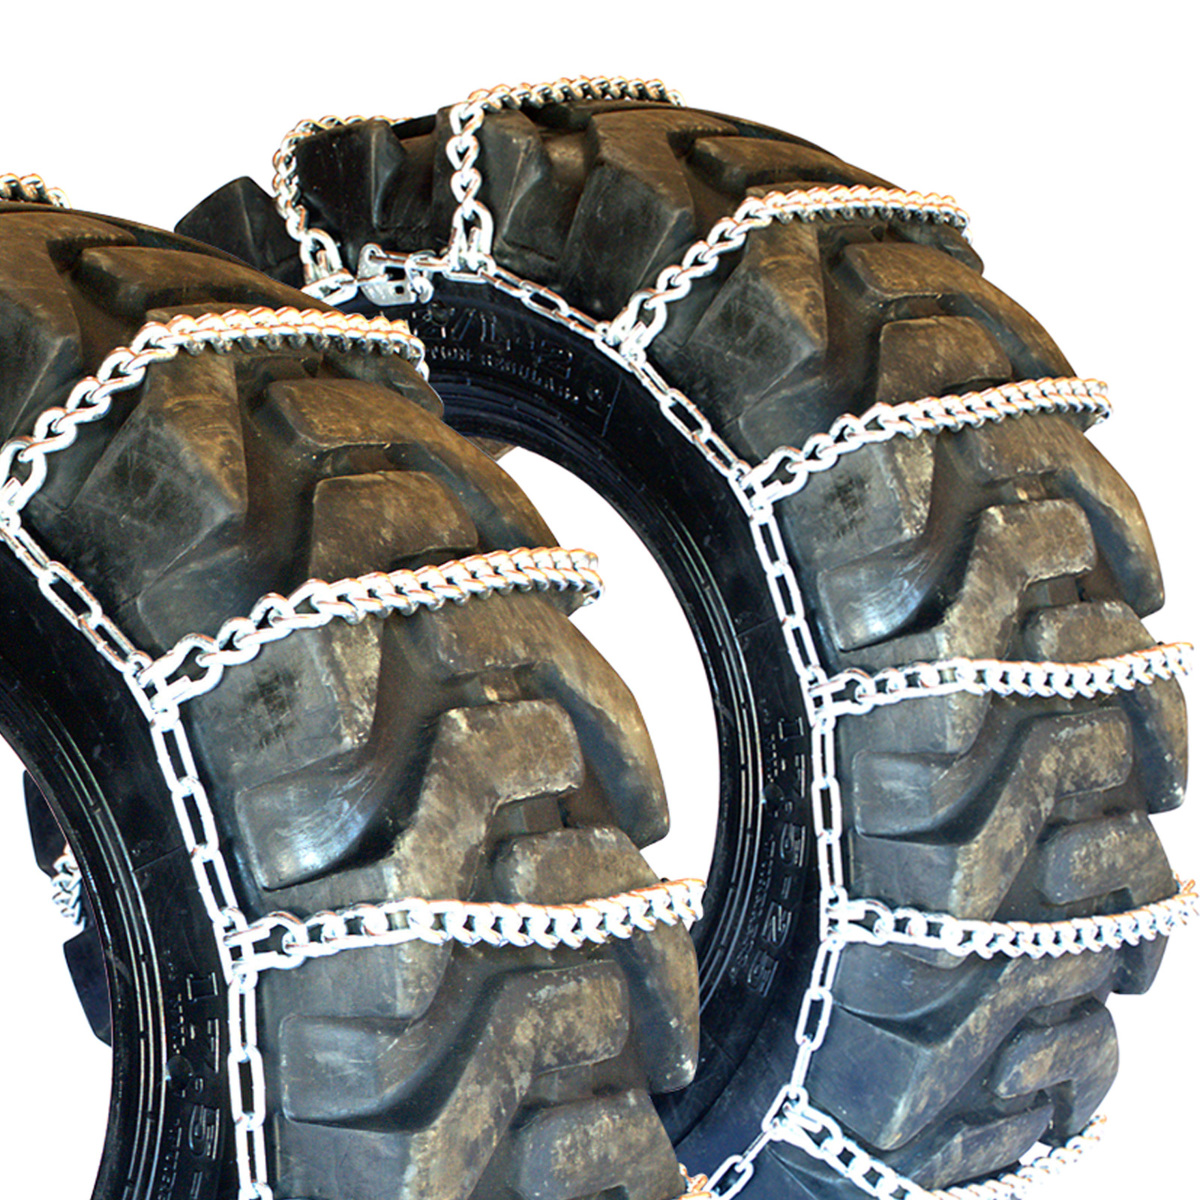 Titan Tractor Link Tire Chains Snow Ice Mud 10mm 124 16 Ebay